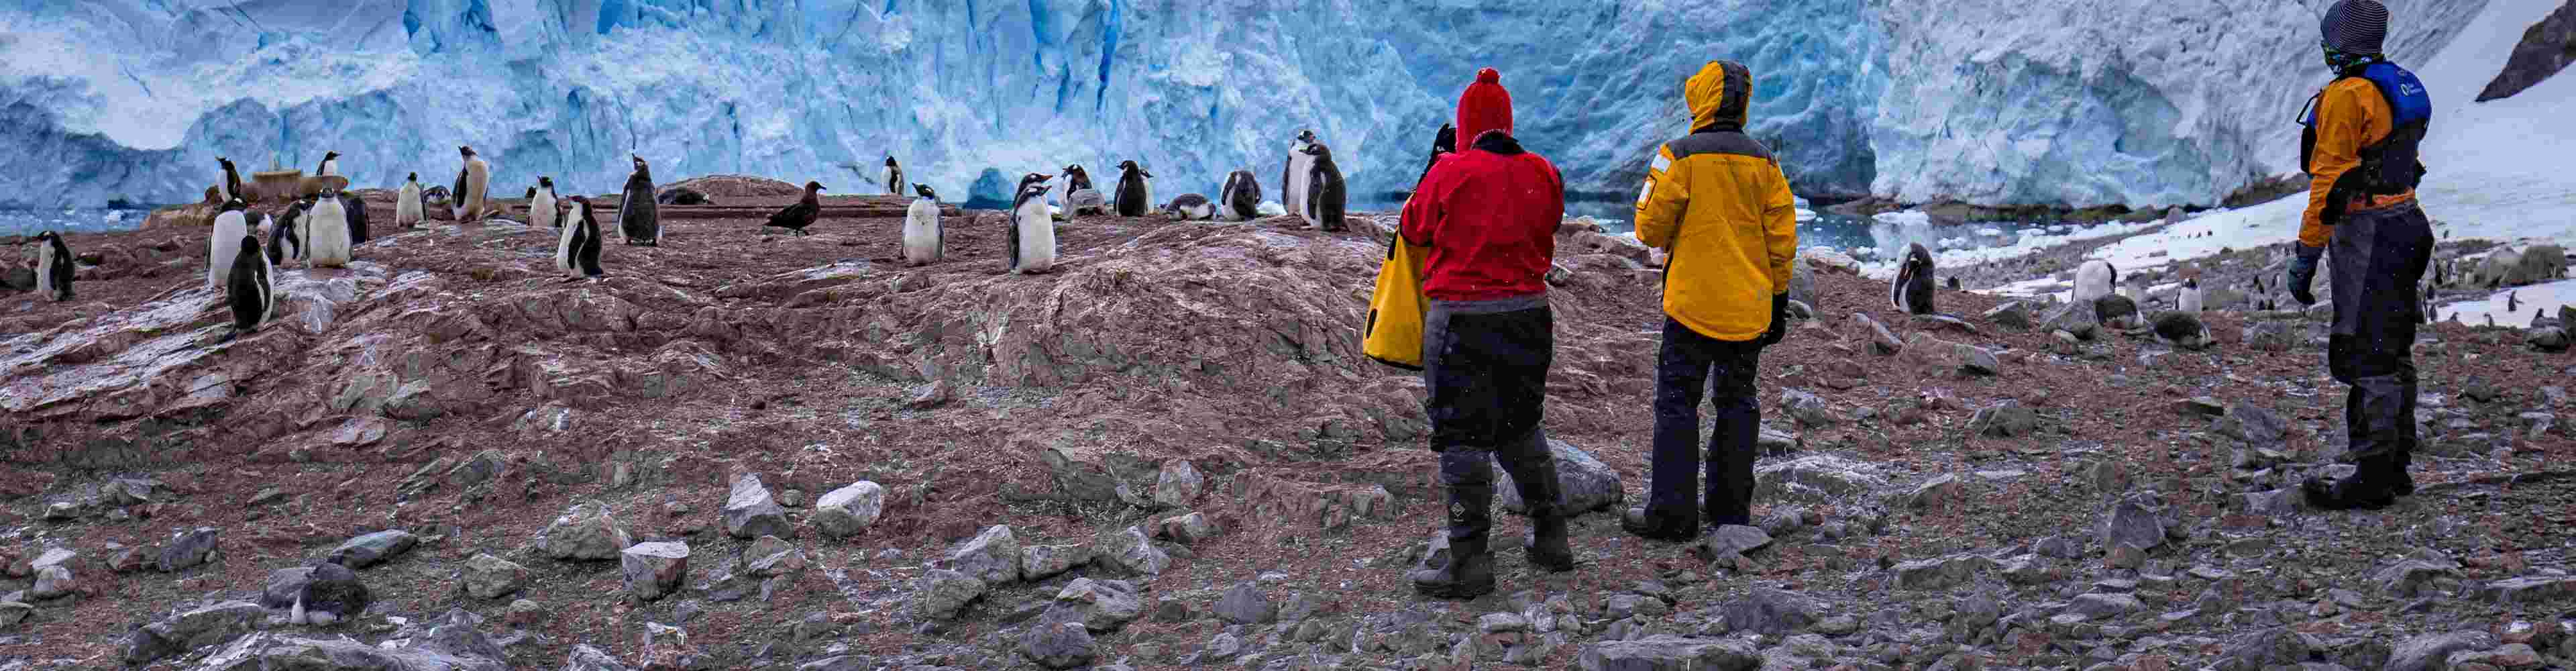 Christmas Cruise Expedition Antarctica: Endeavour